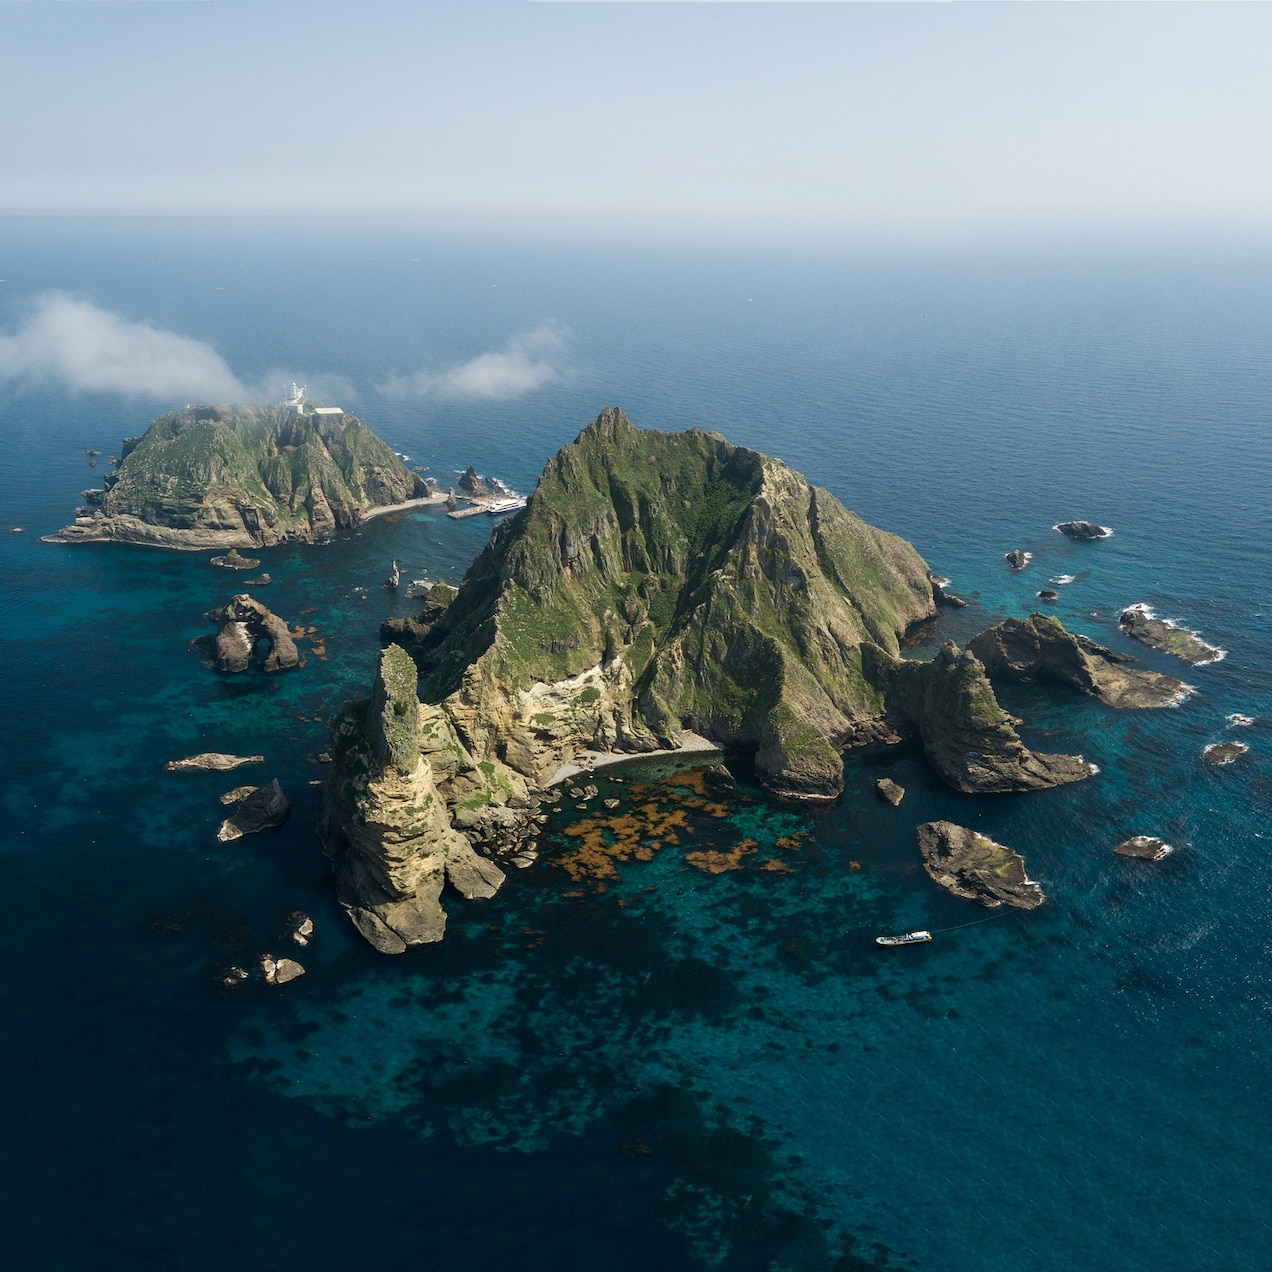 The Dokdo Islands are the center of a diplomatic dispute between South Korea and Japan that goes back more than 300 years.